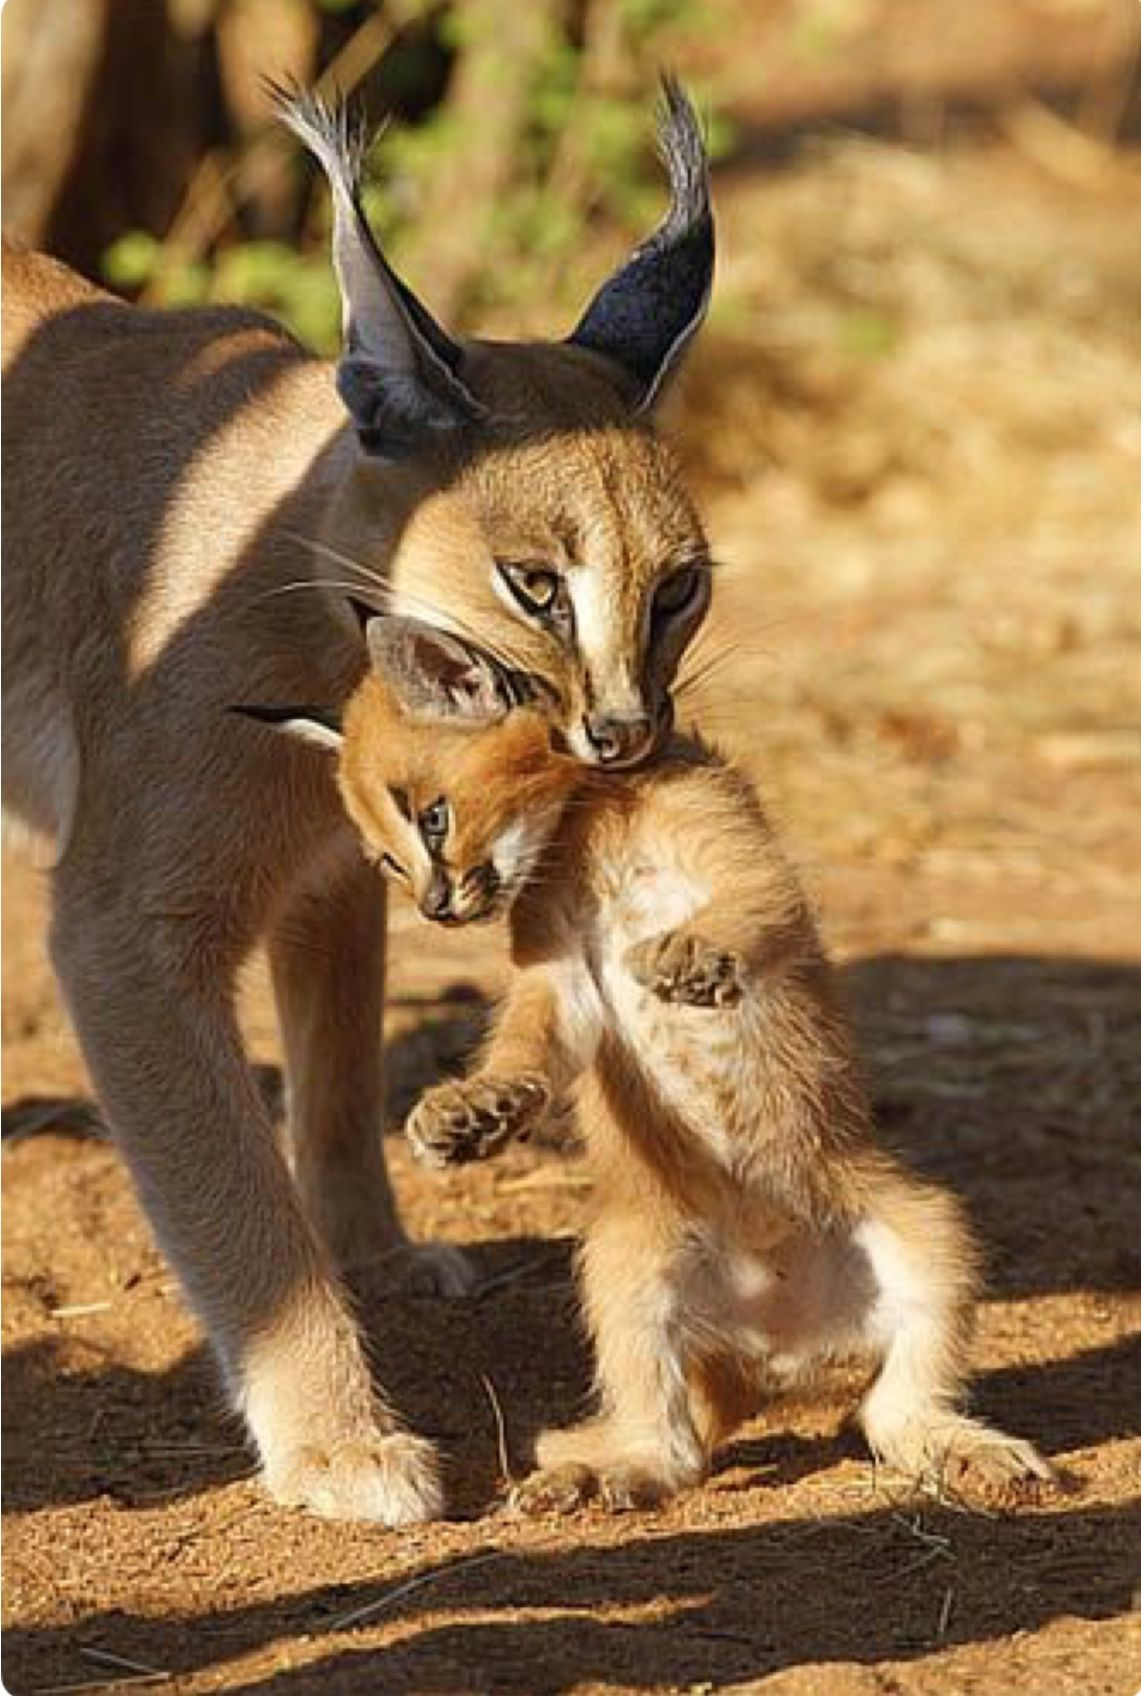 A mother caracal carrying her baby. Caracals (Caracal